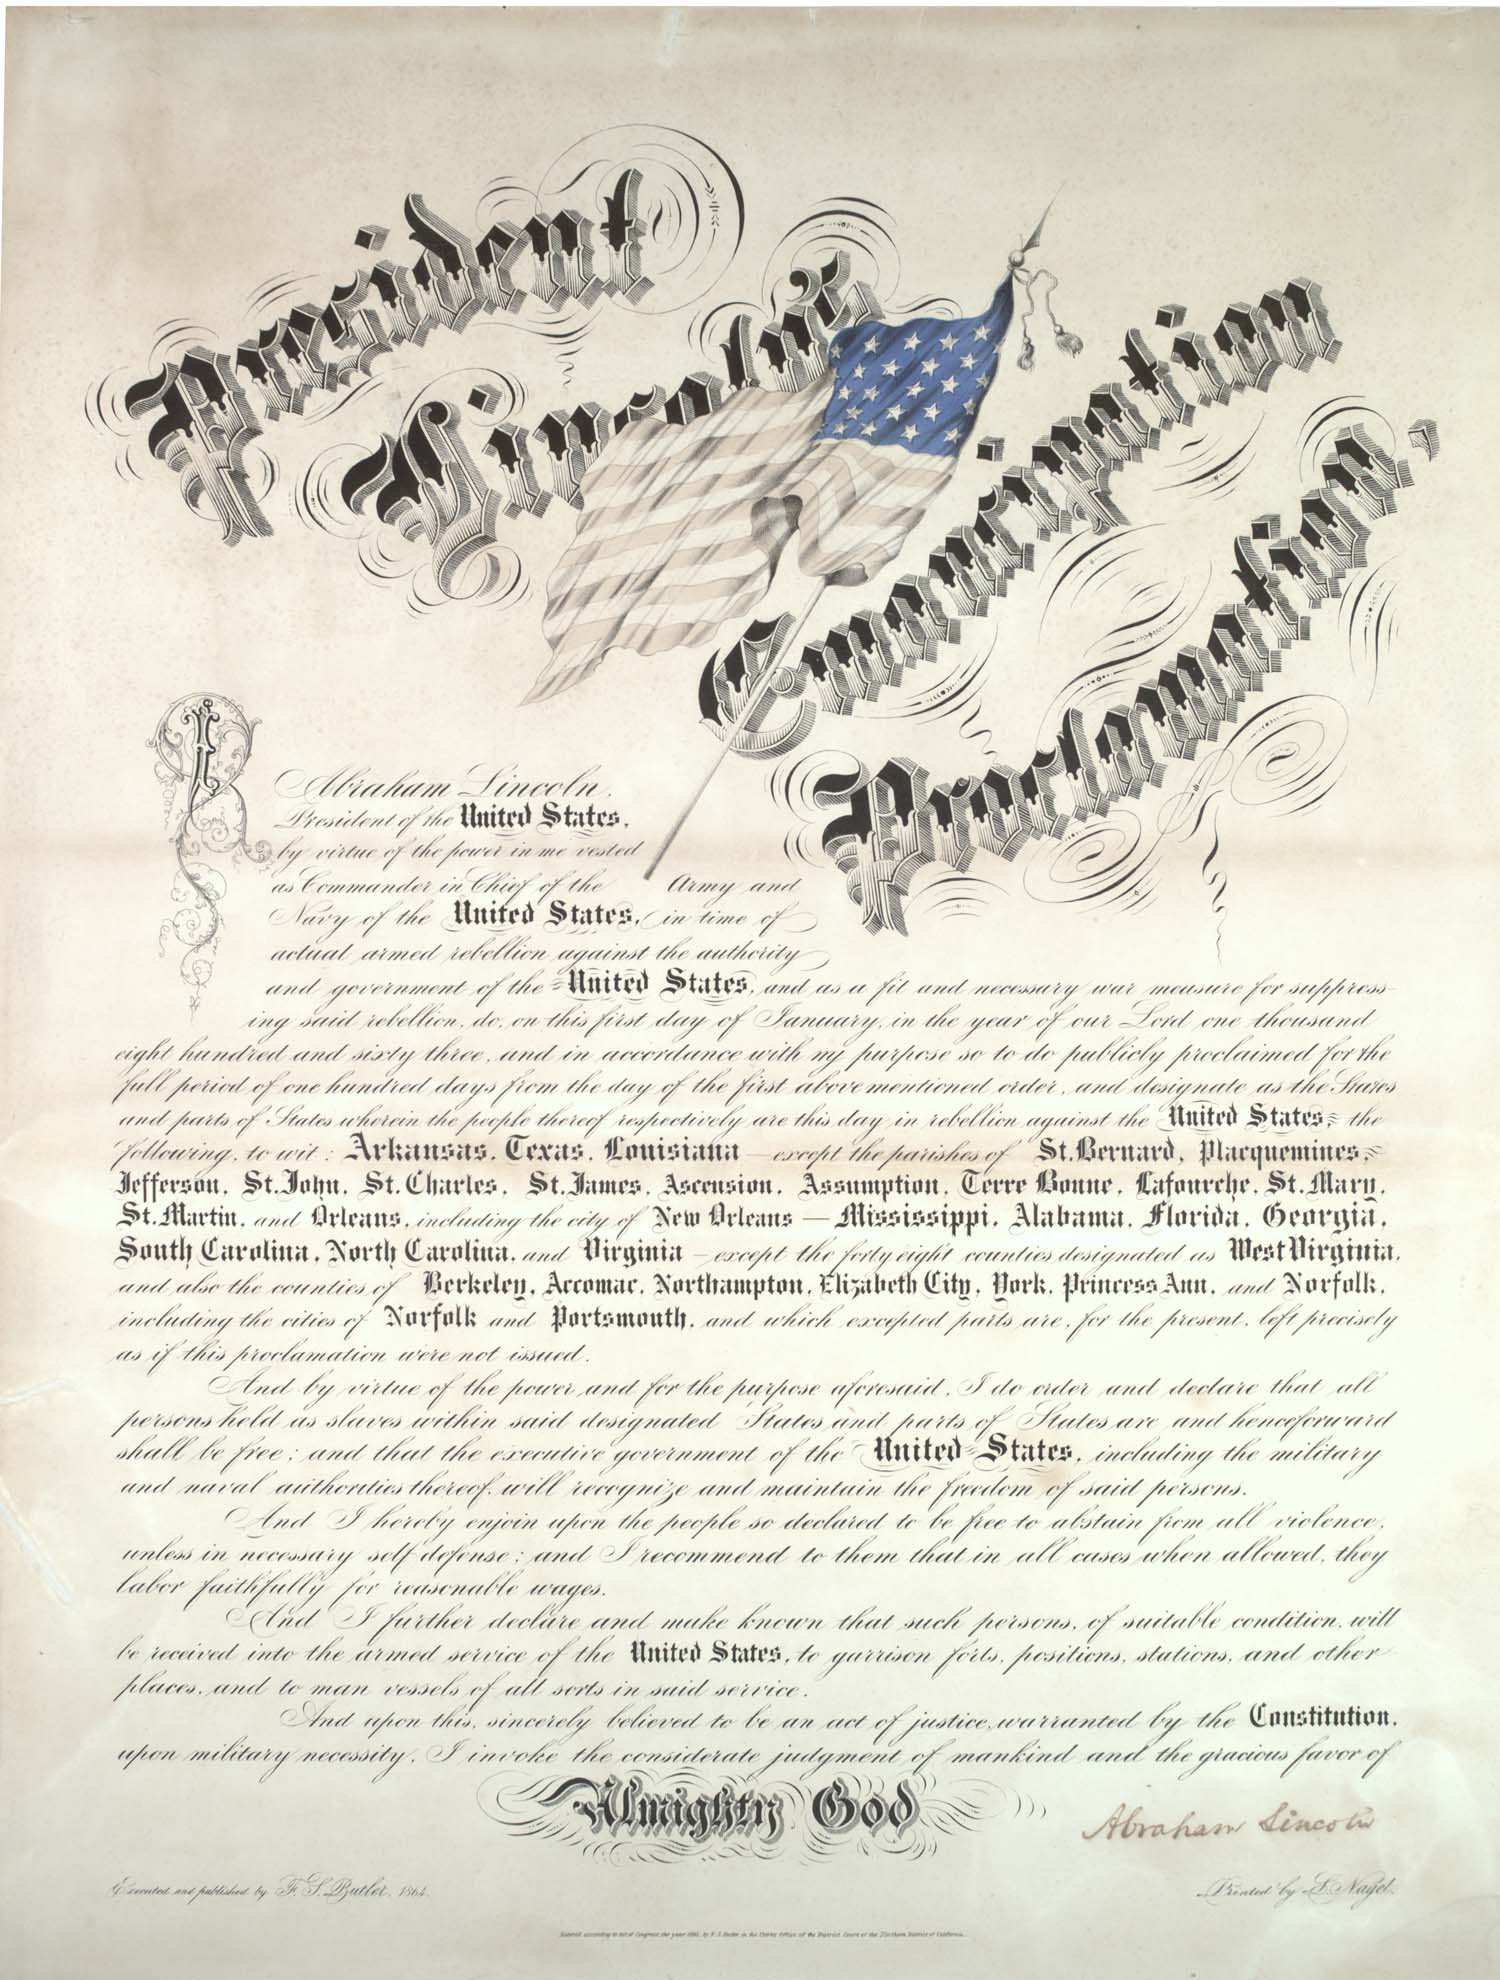 Emancipation Proclamation [California printing, Cheesman copy], January 1, 1863